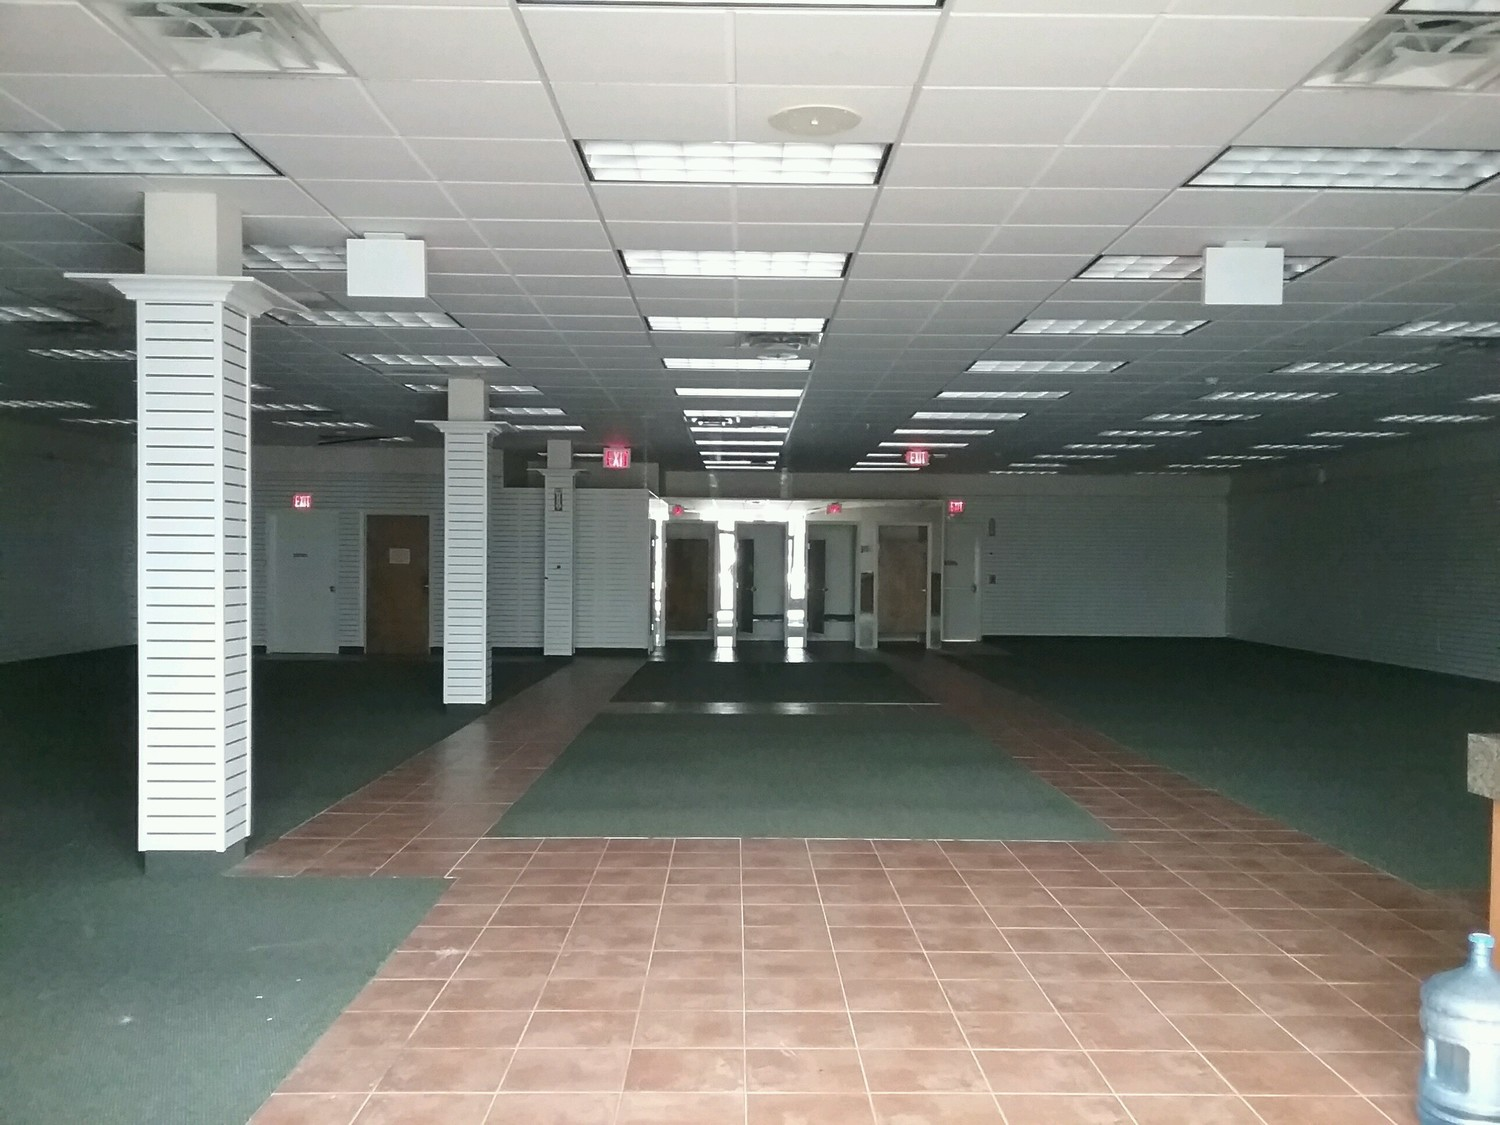 Inside one of the shopping center's vacant properties.